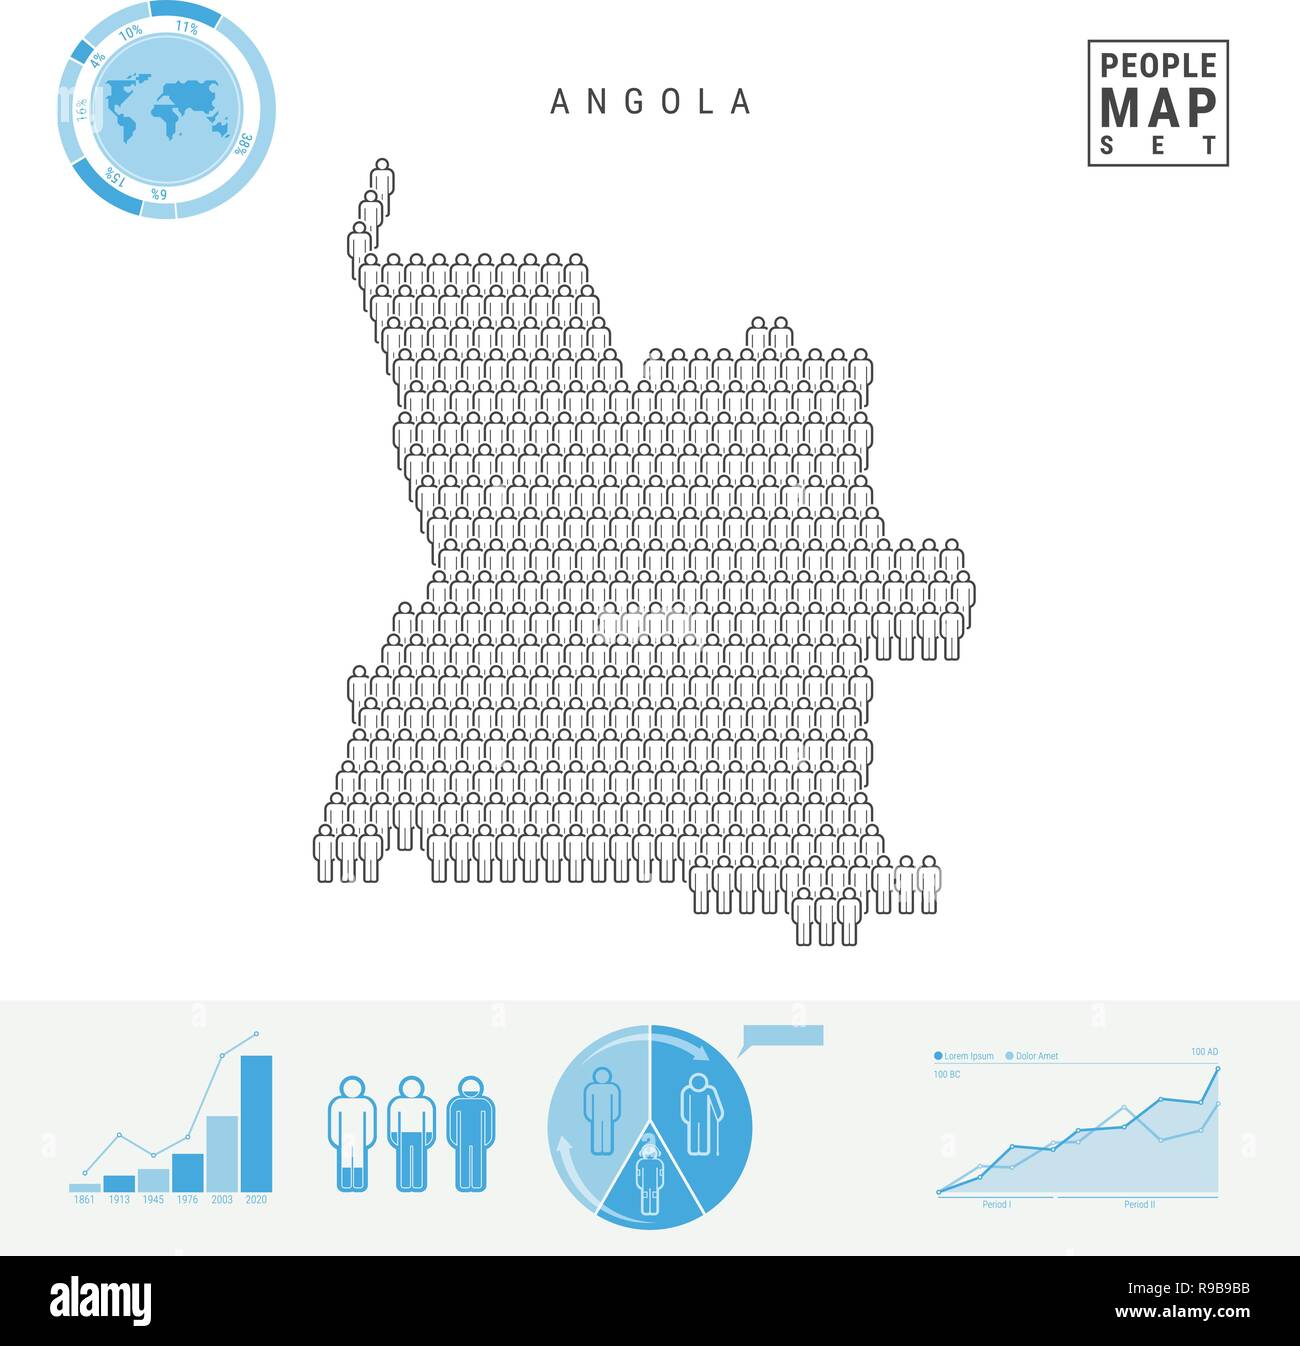 Angola People Icon Map. People Crowd in the Shape of a Map of Angola. Stylized Silhouette of Angola. Population Growth and Aging Infographic Elements. - Stock Vector